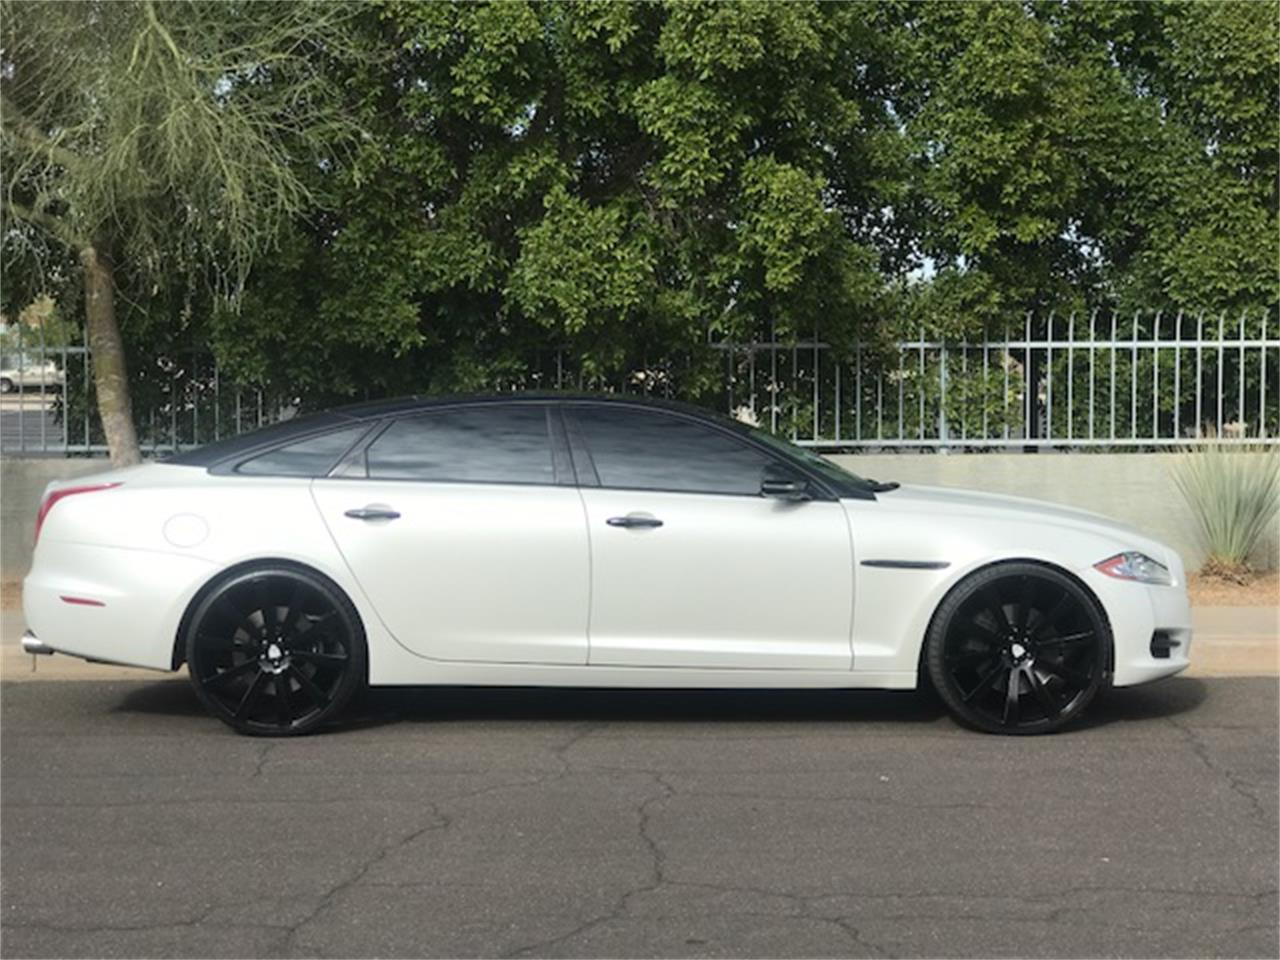 Large Picture of 2011 XJL Supercharged located in Arizona Auction Vehicle - MOE8